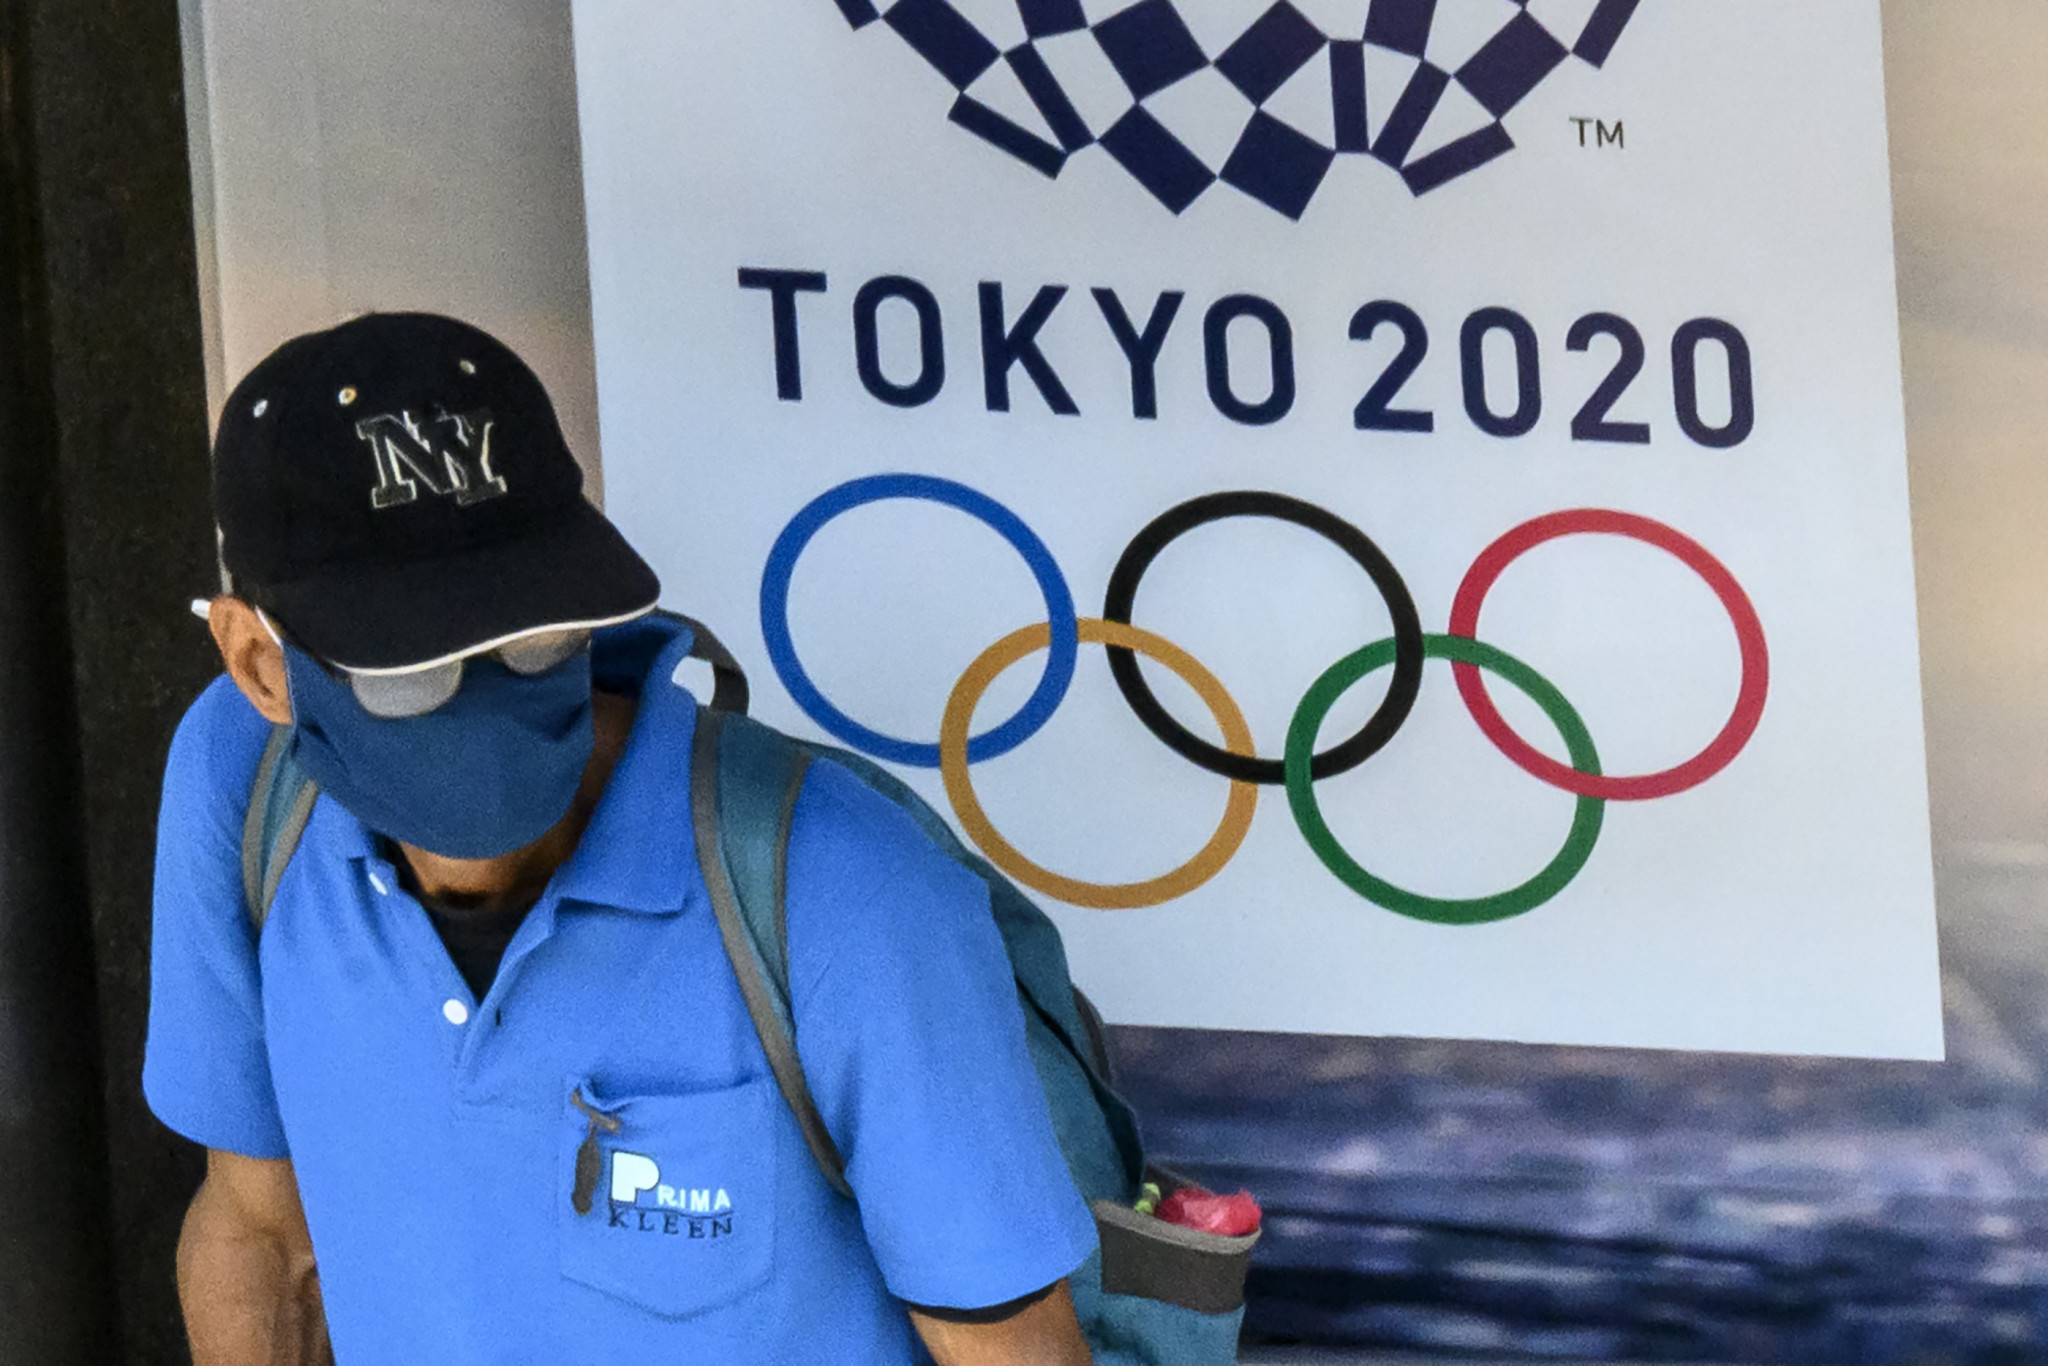 """Tokyo 2020 revealed they are """"purely working"""" on the rescheduled Olympic and Paralympic Games, suggesting there is no alternative plan if the pandemic is still an issue next year ©Getty Images"""